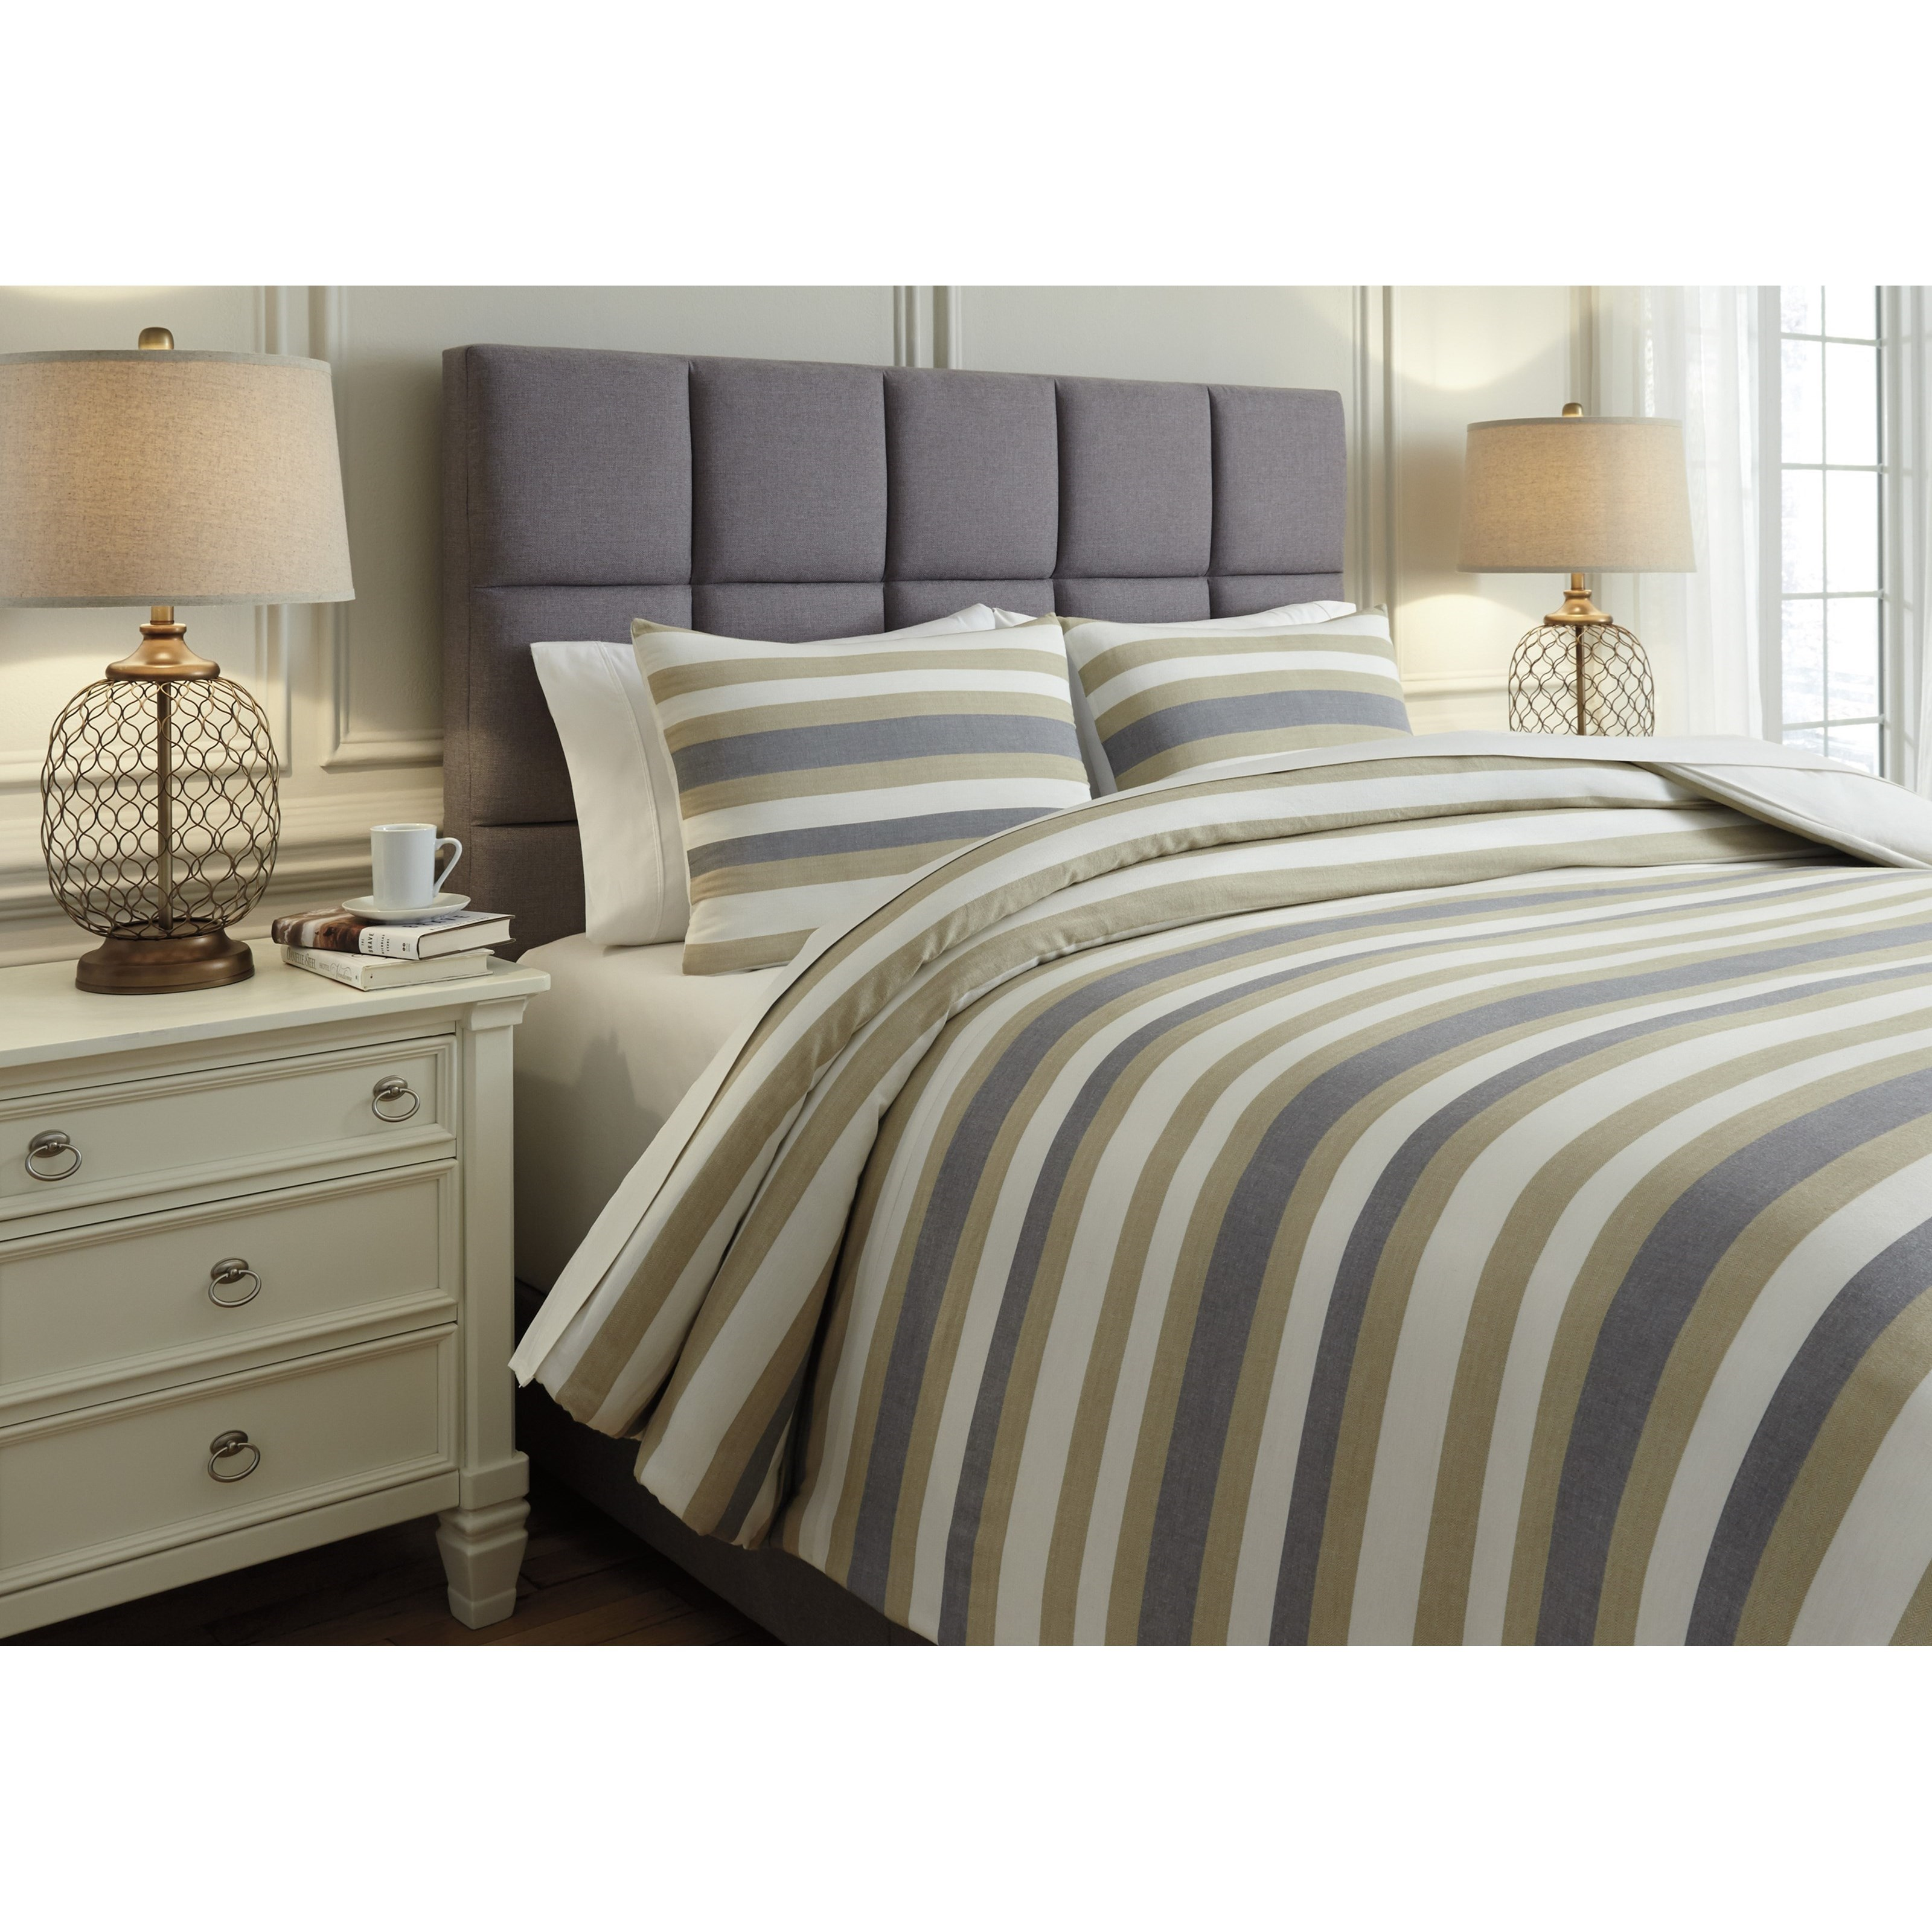 Ashley Signature Design Bedding Sets Queen Isaiah Gray